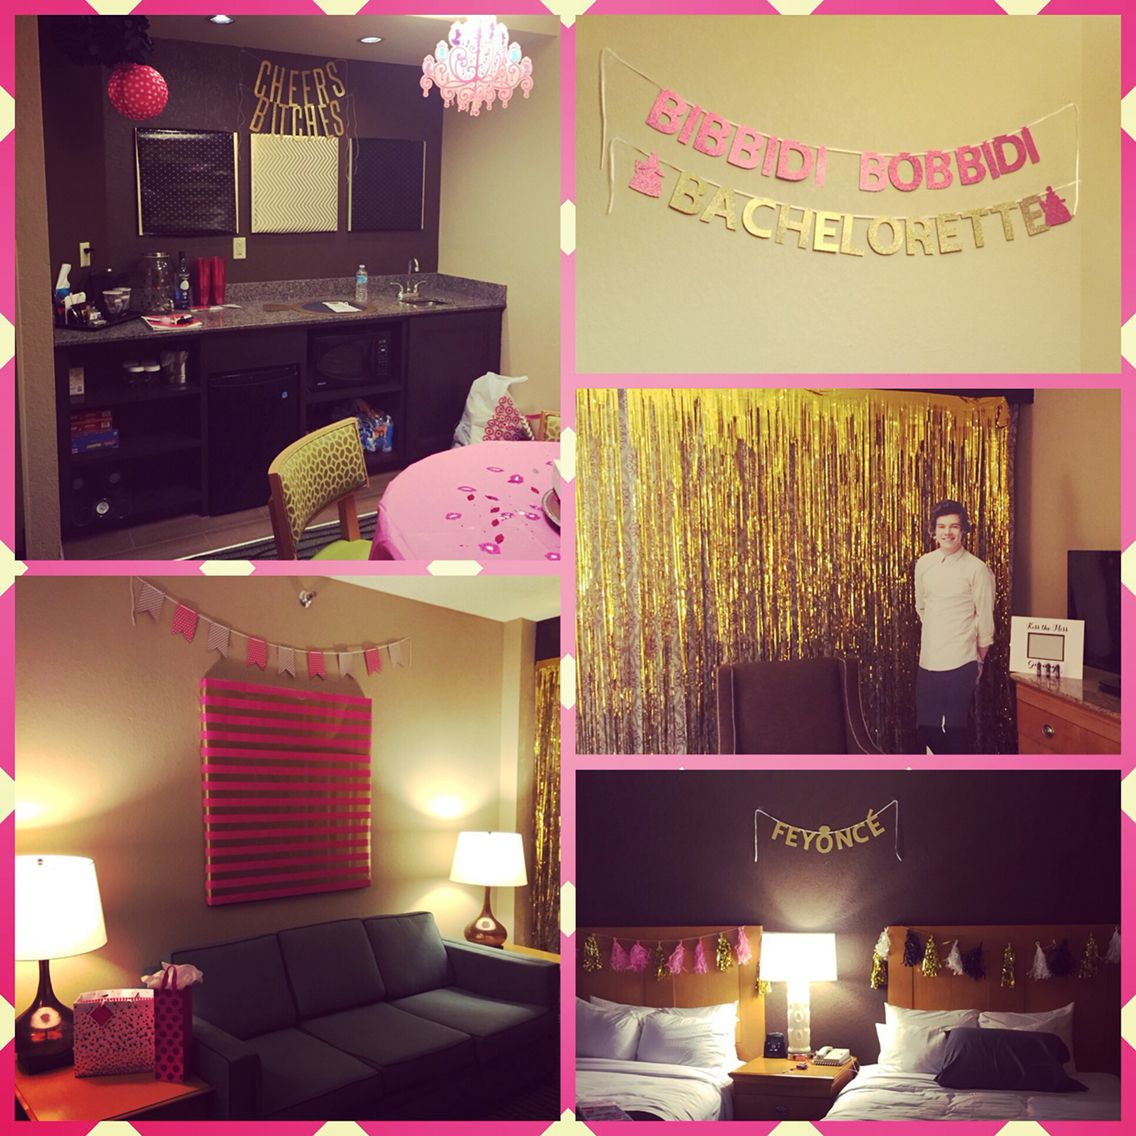 Decoration Hotel Hotel Room Decorated For A Bachelorette Party Bachelorette